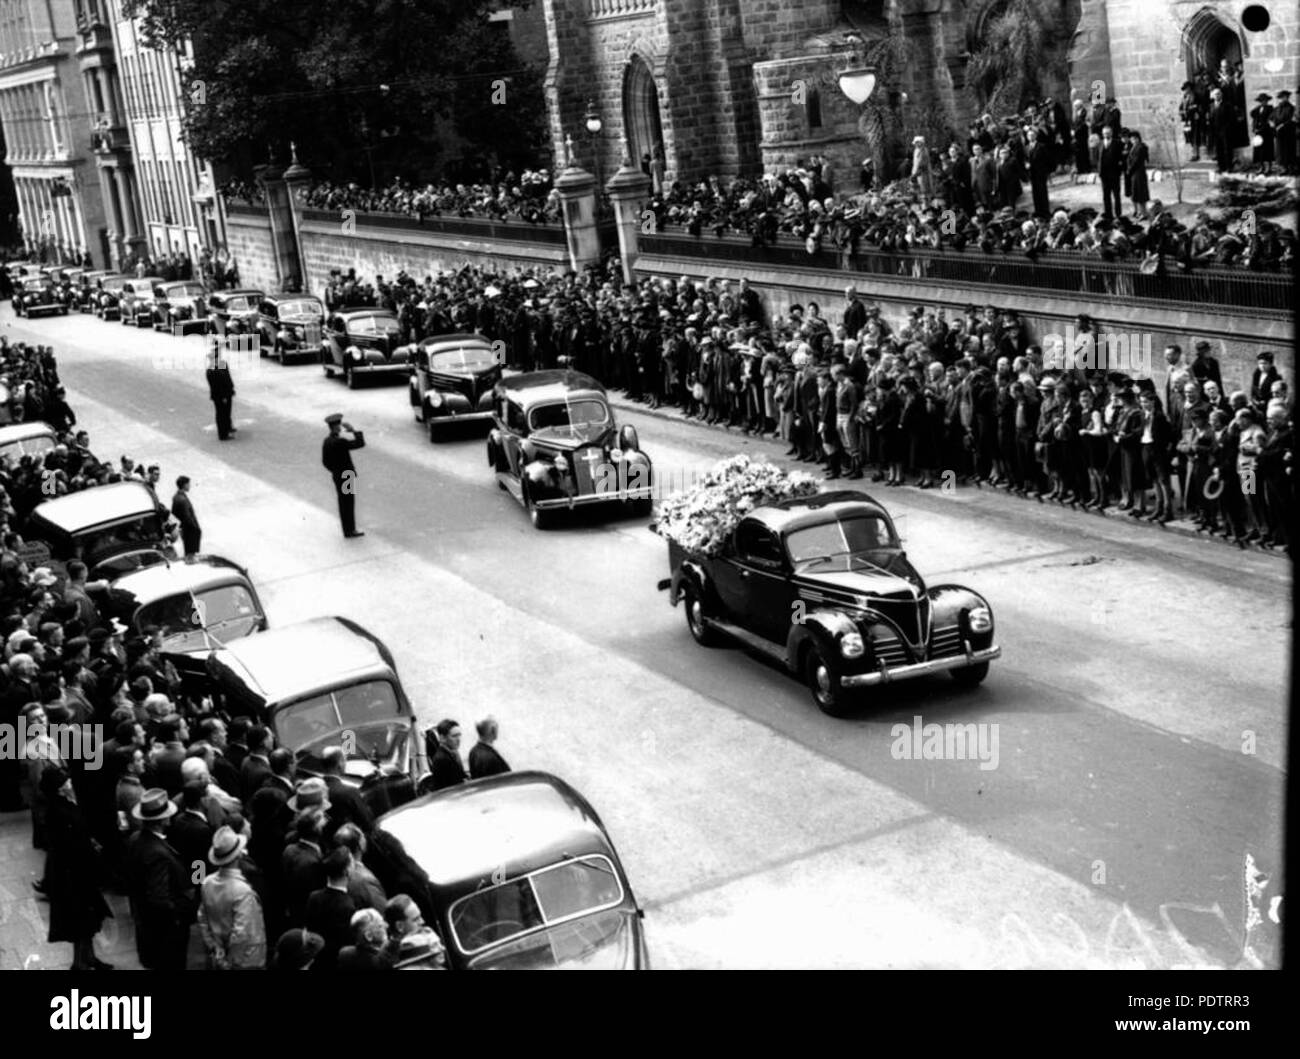 203 StateLibQld 1 108176 Funeral procession for well respected judge, Hugh Macrossan, Brisbane, 1940 - Stock Image